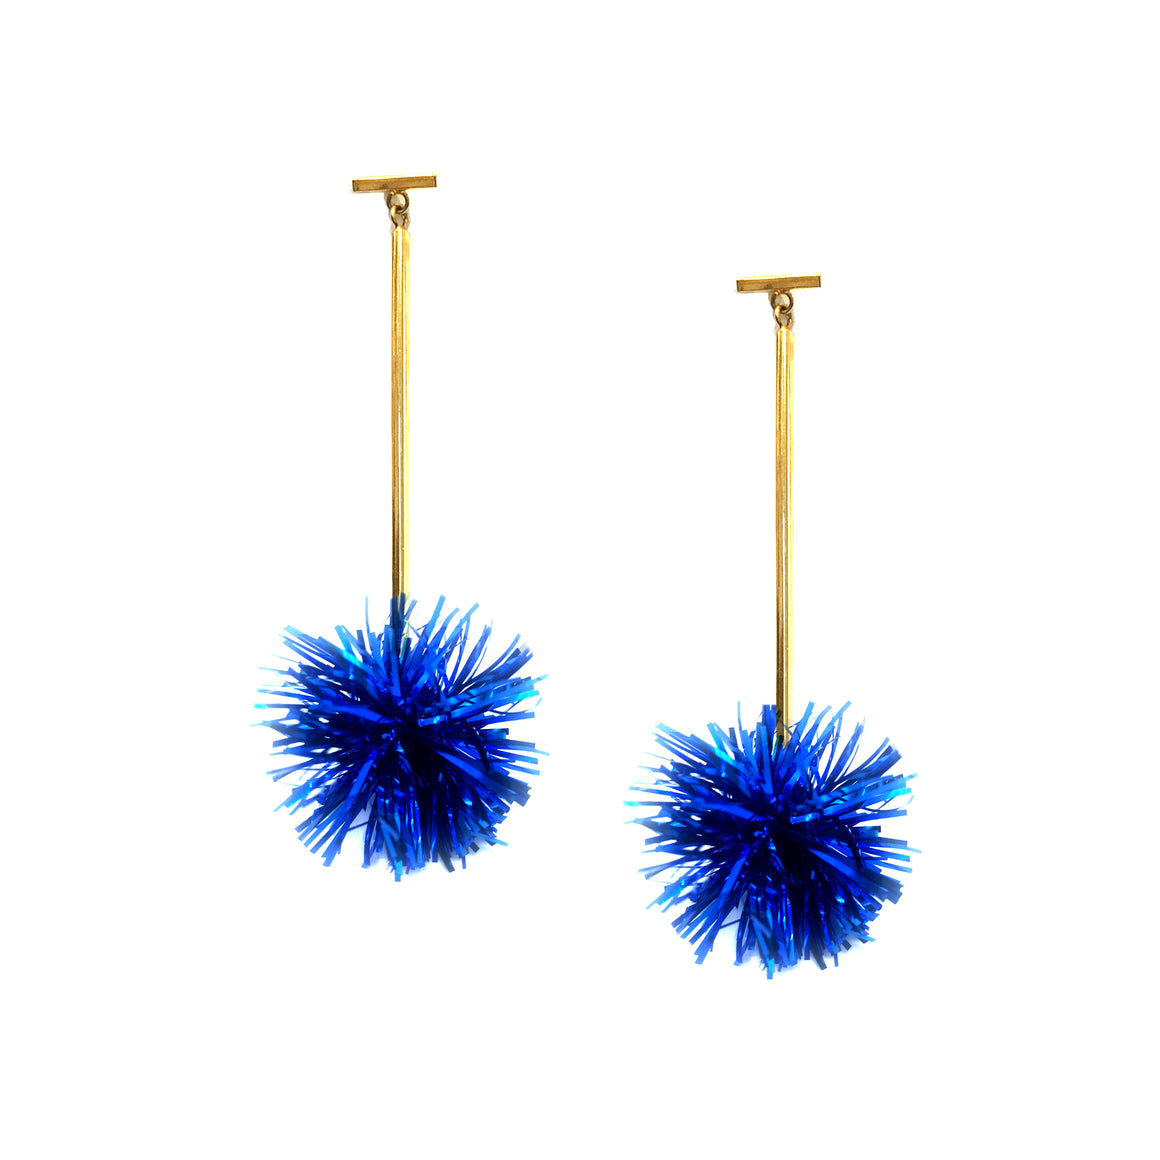 "Cobalt 1"" Lurex Pom Pom T Bar Earrings, Earrings, Tuleste, Tuleste"